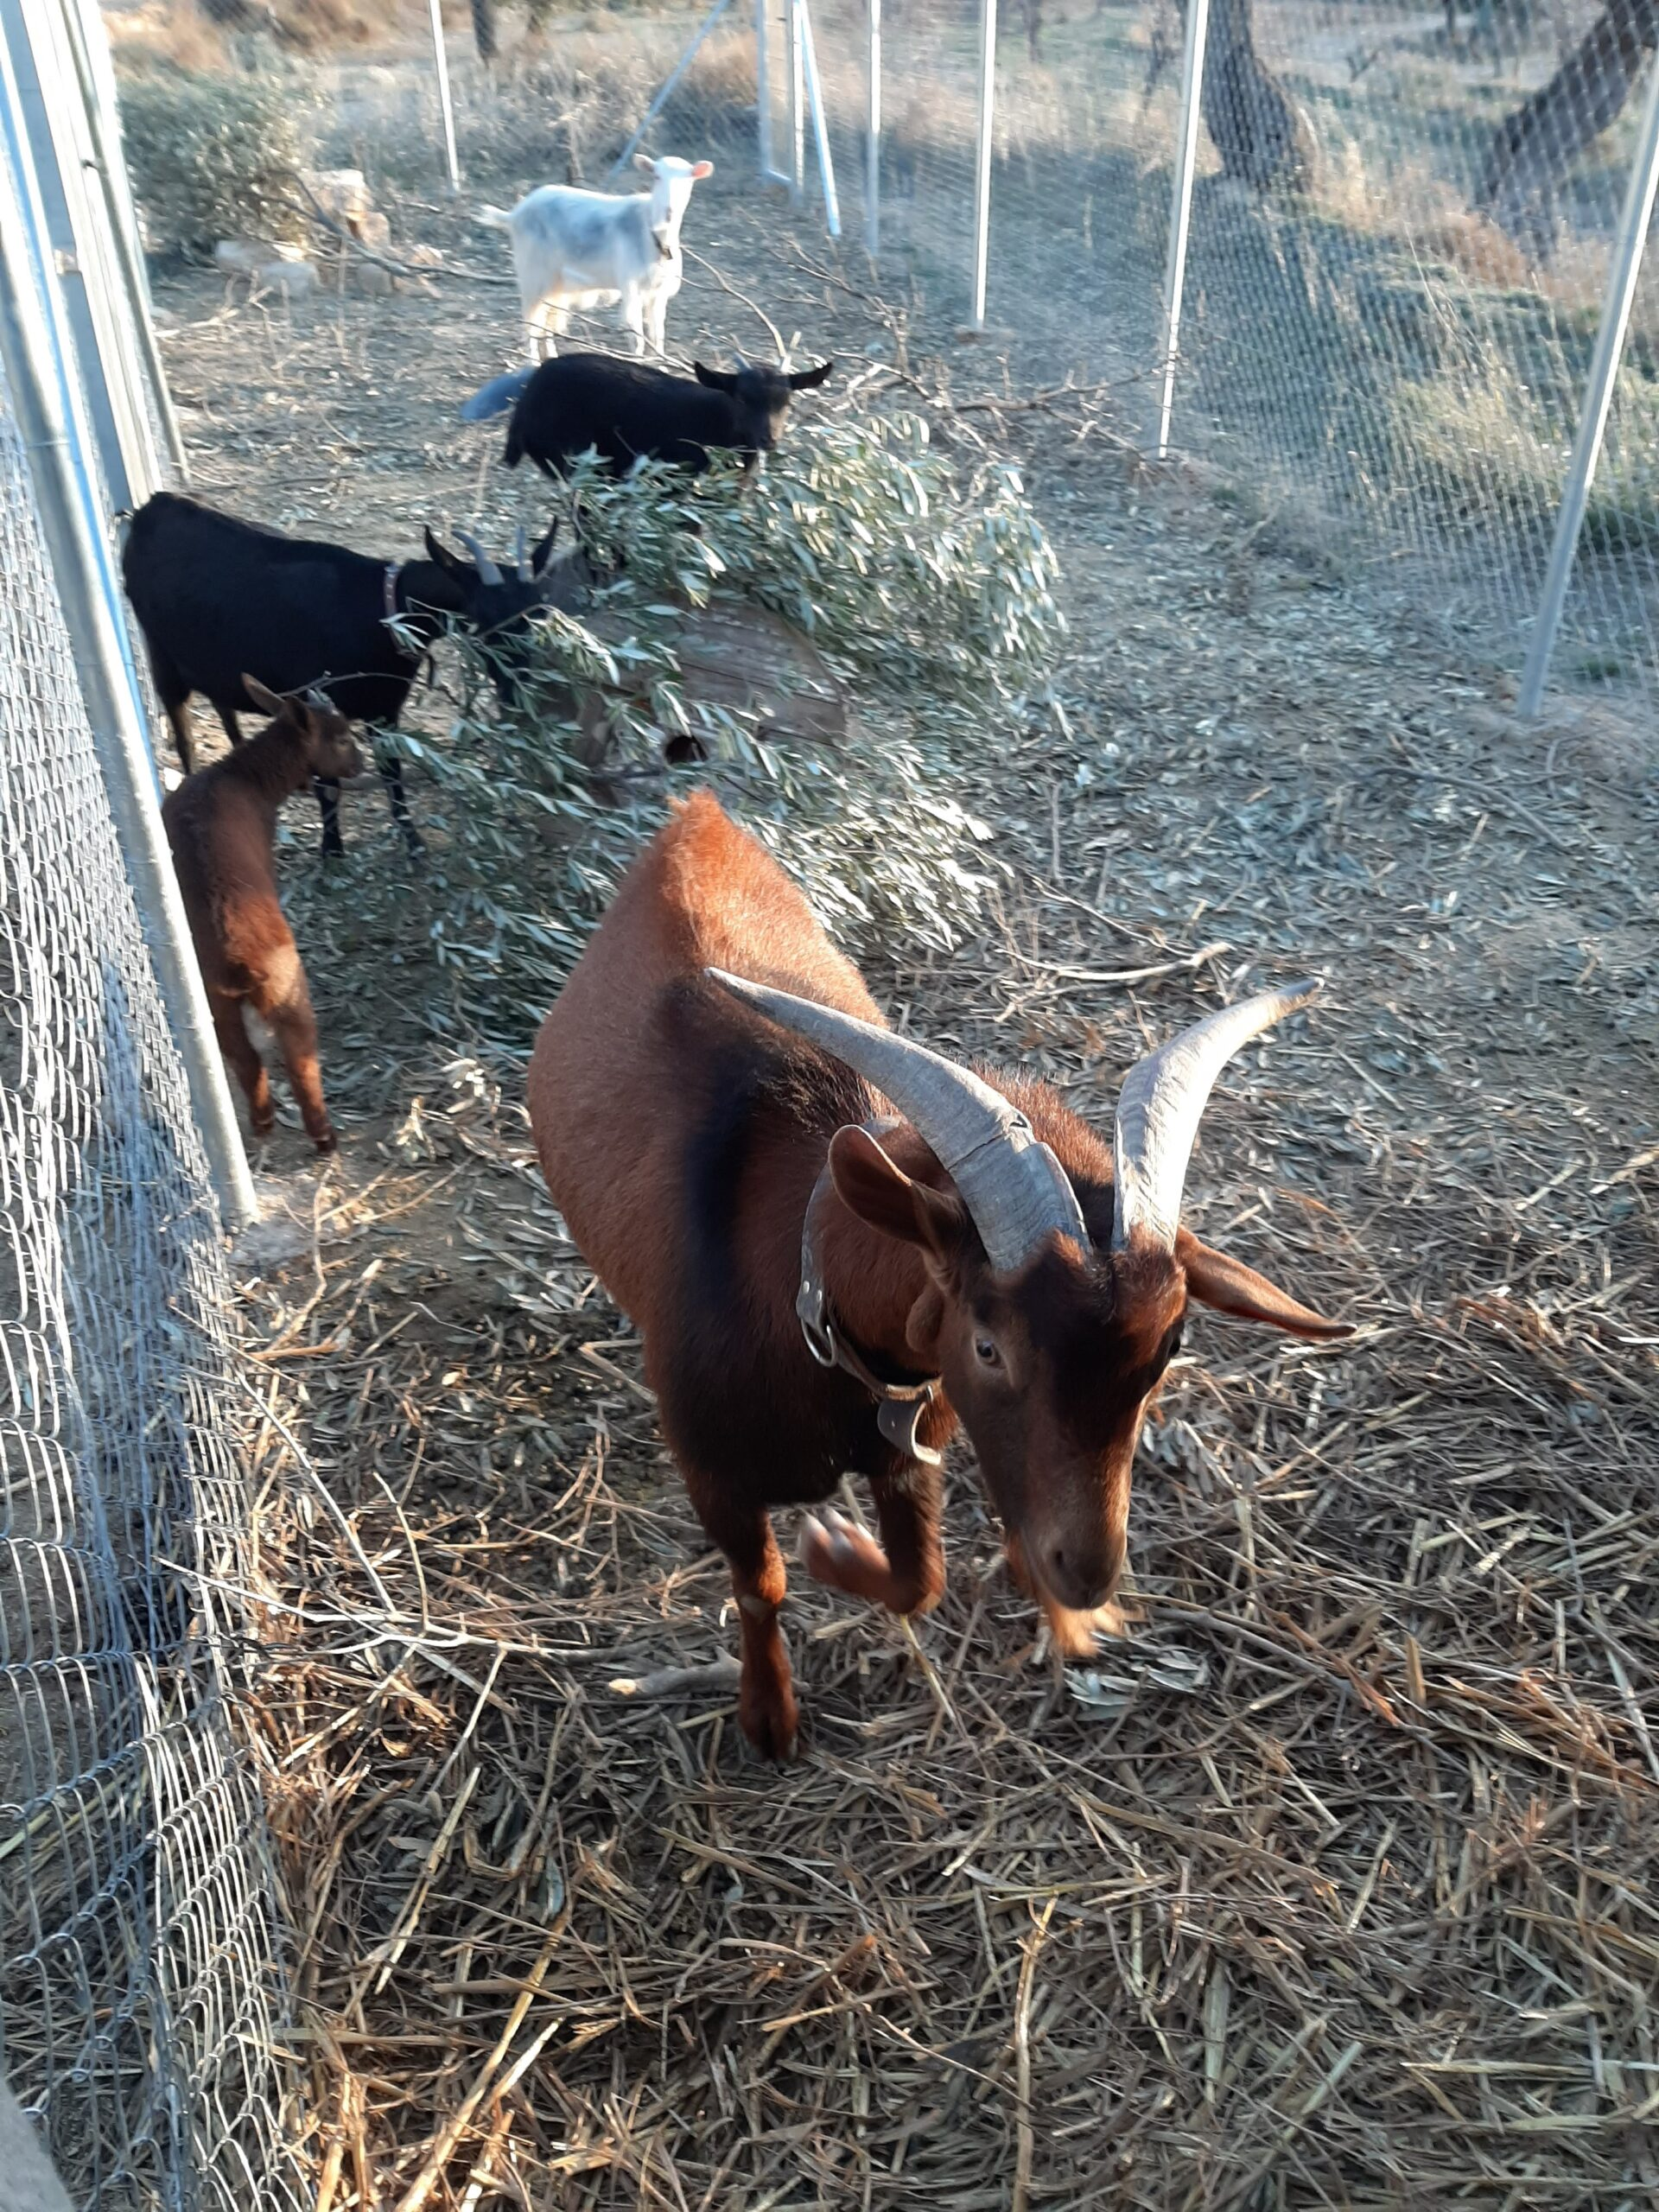 What's new in February at the Freedom Farm?